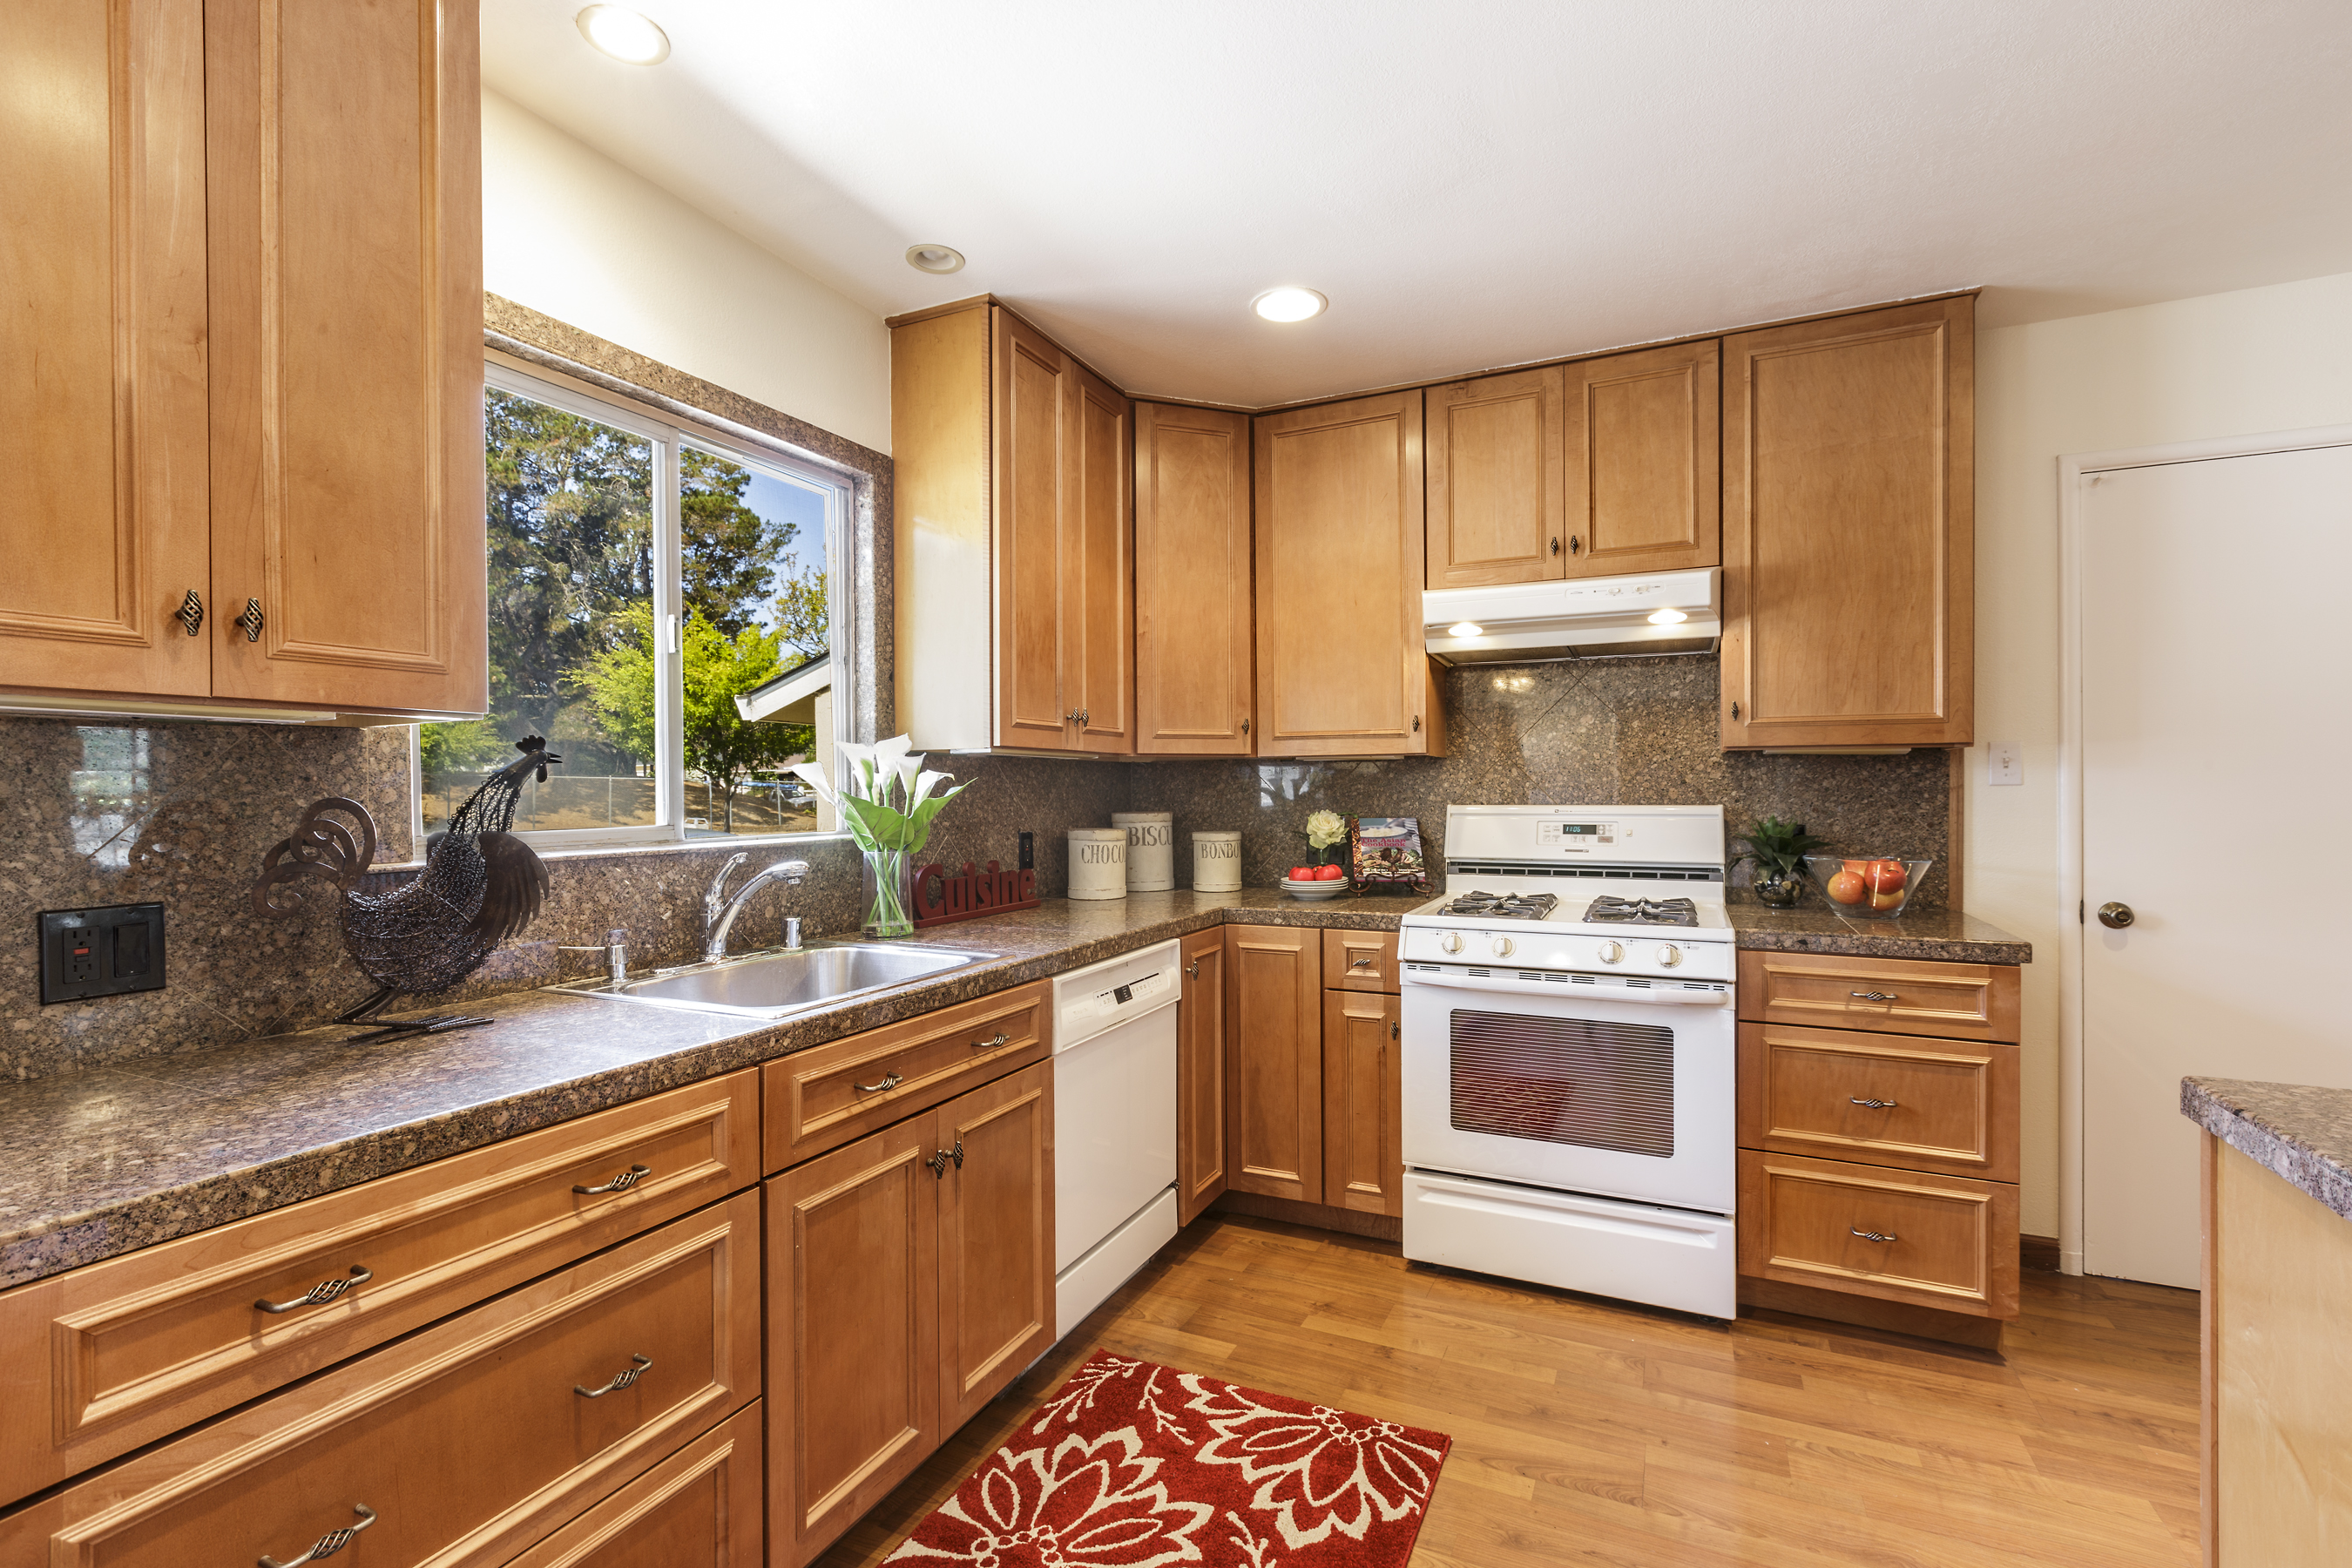 12-3115AlamedaDeLasPulgas-kitchen-high-res